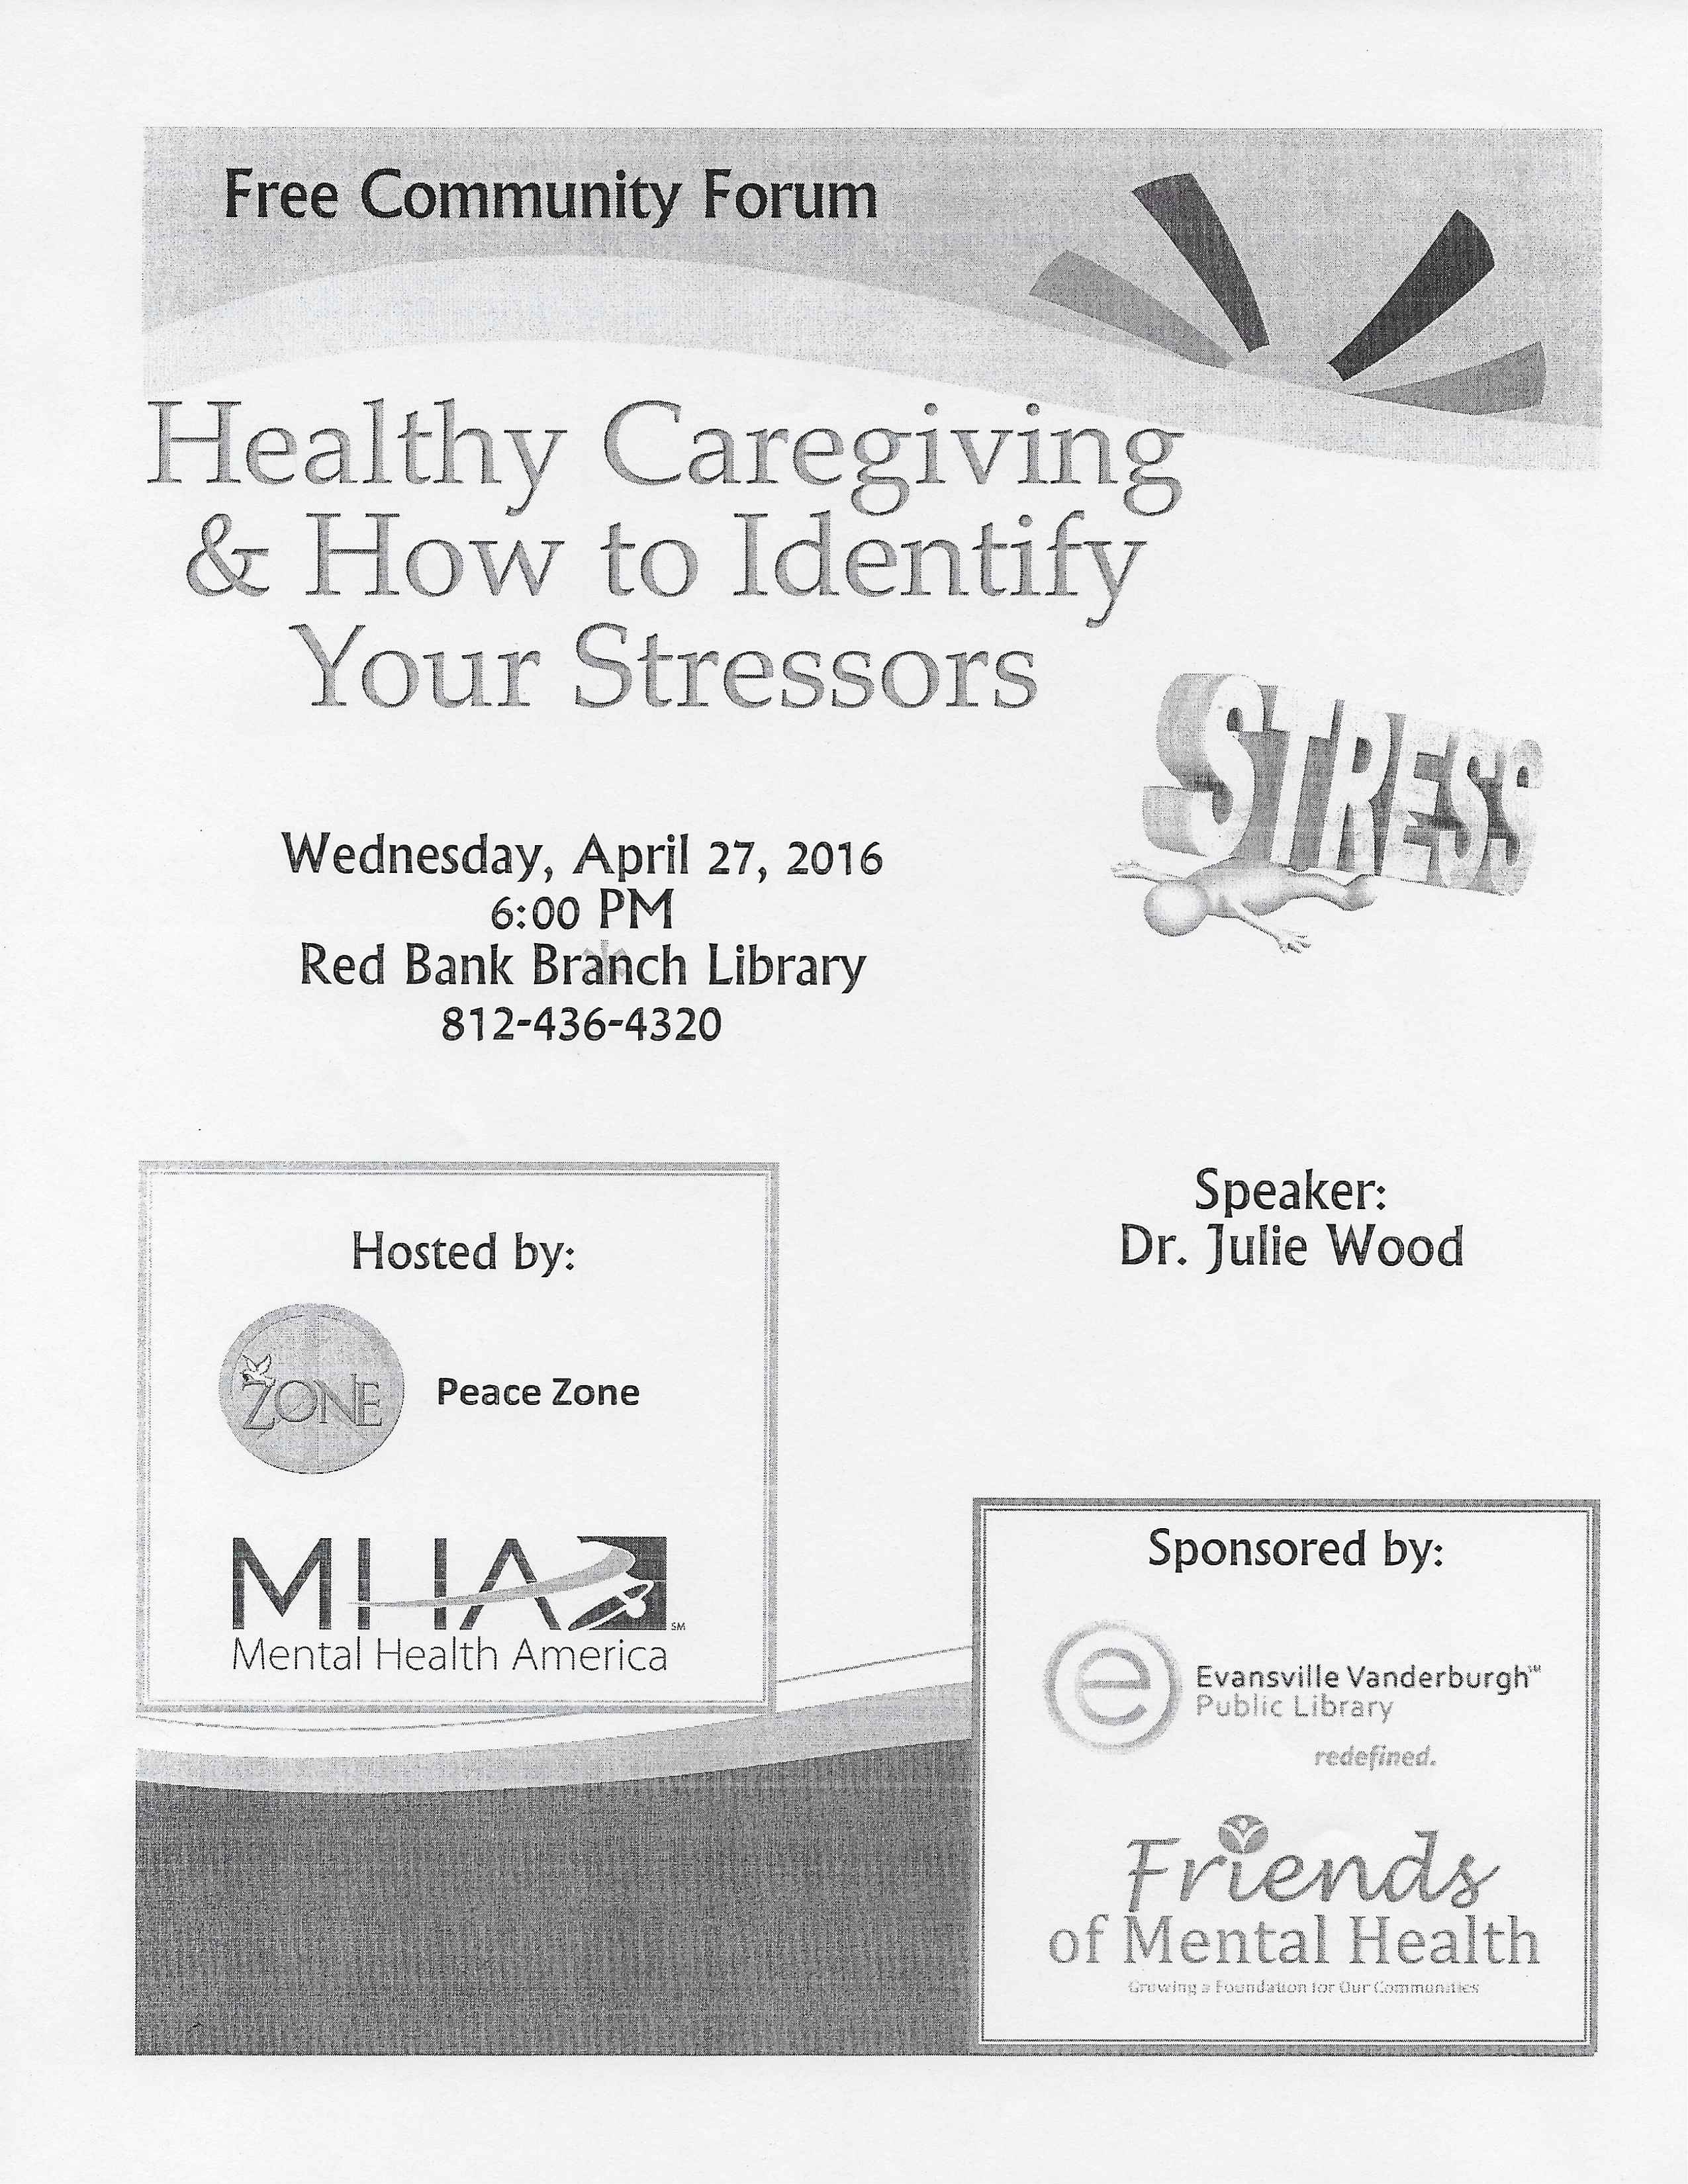 Healthy Caregiving & How to Identify Your Stressors